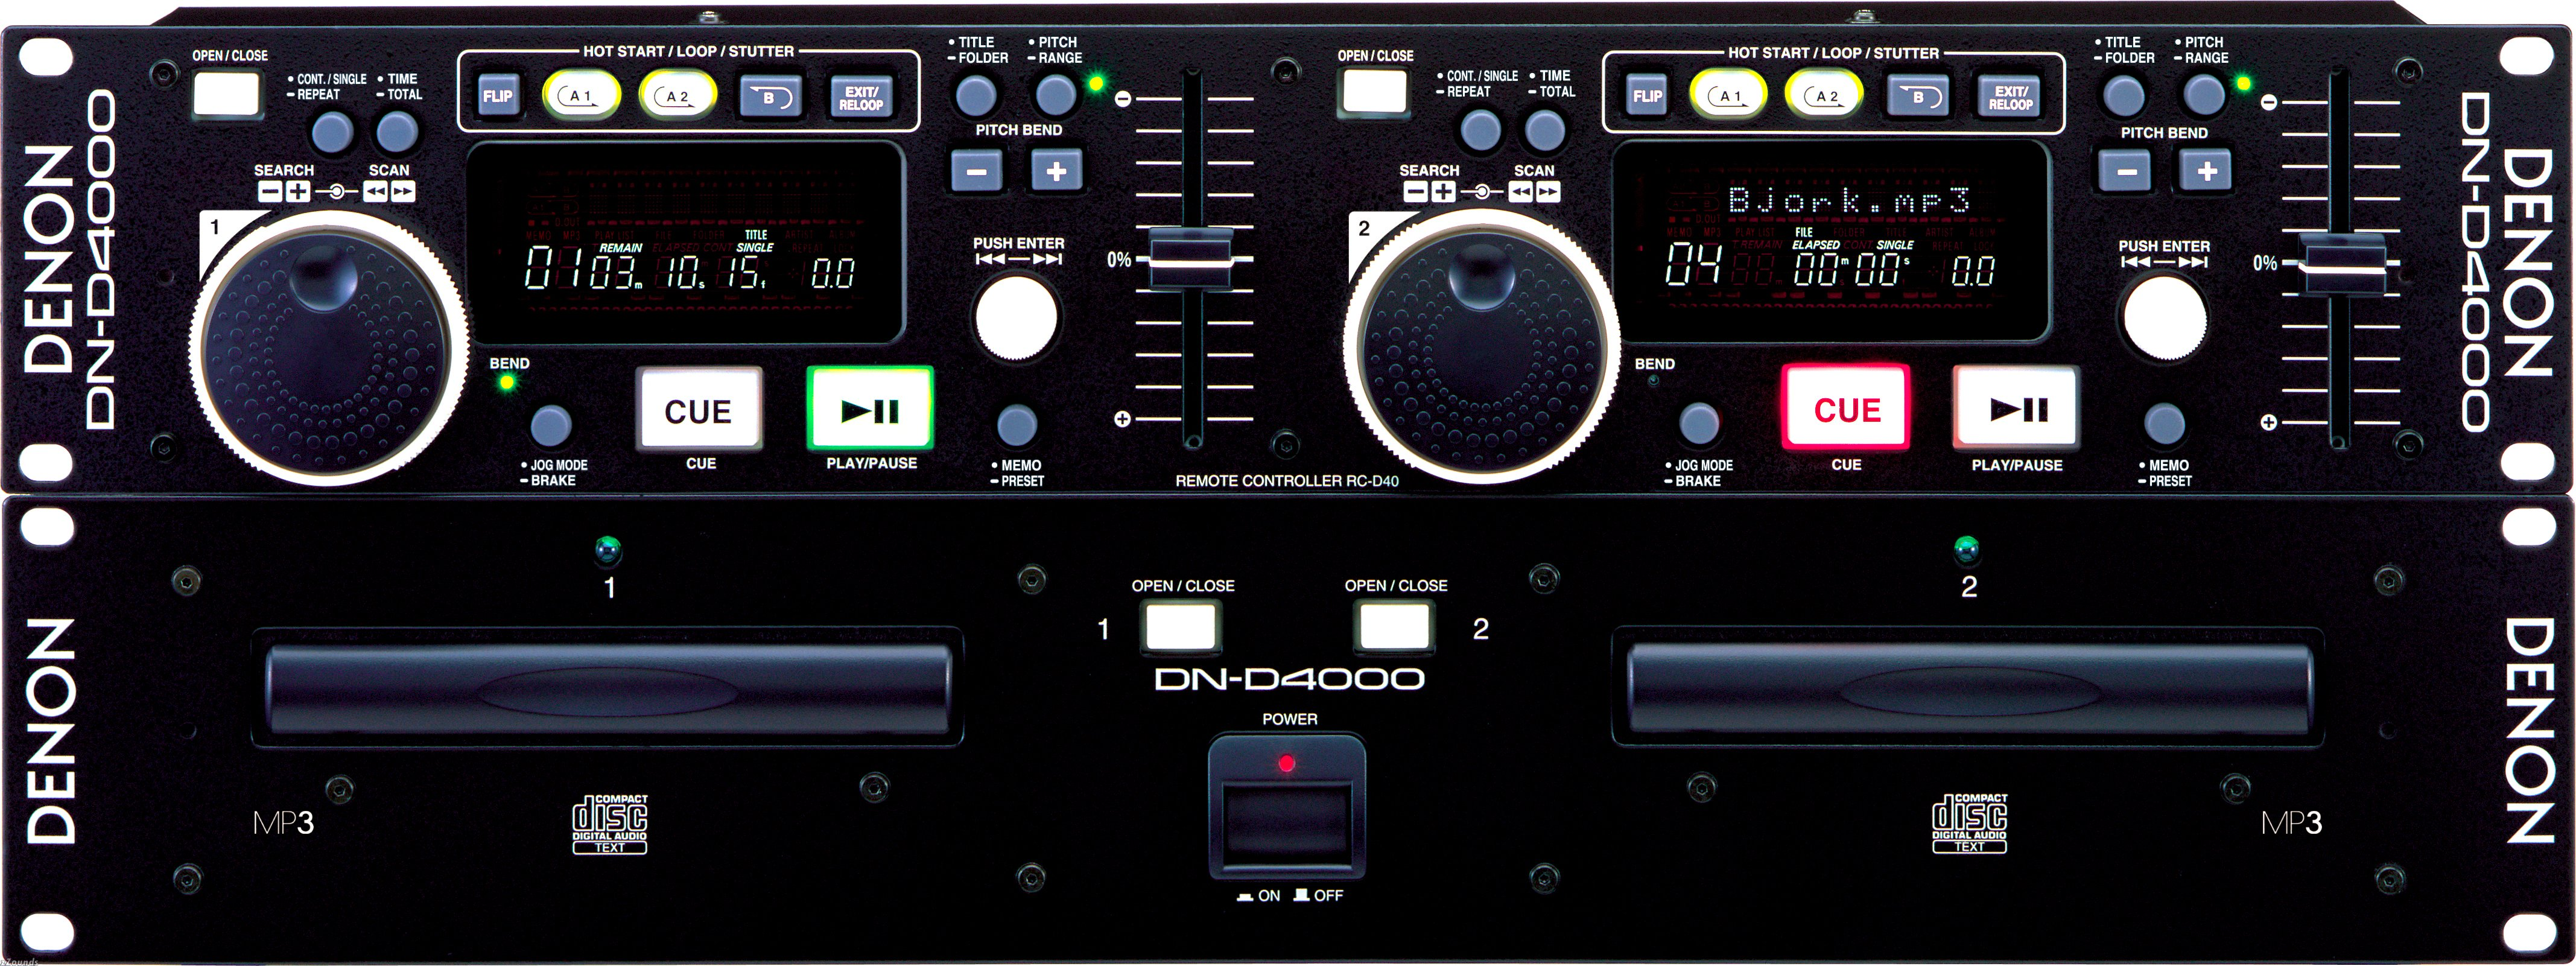 Denon DND4500 Pro Dual CD/MP3 Player